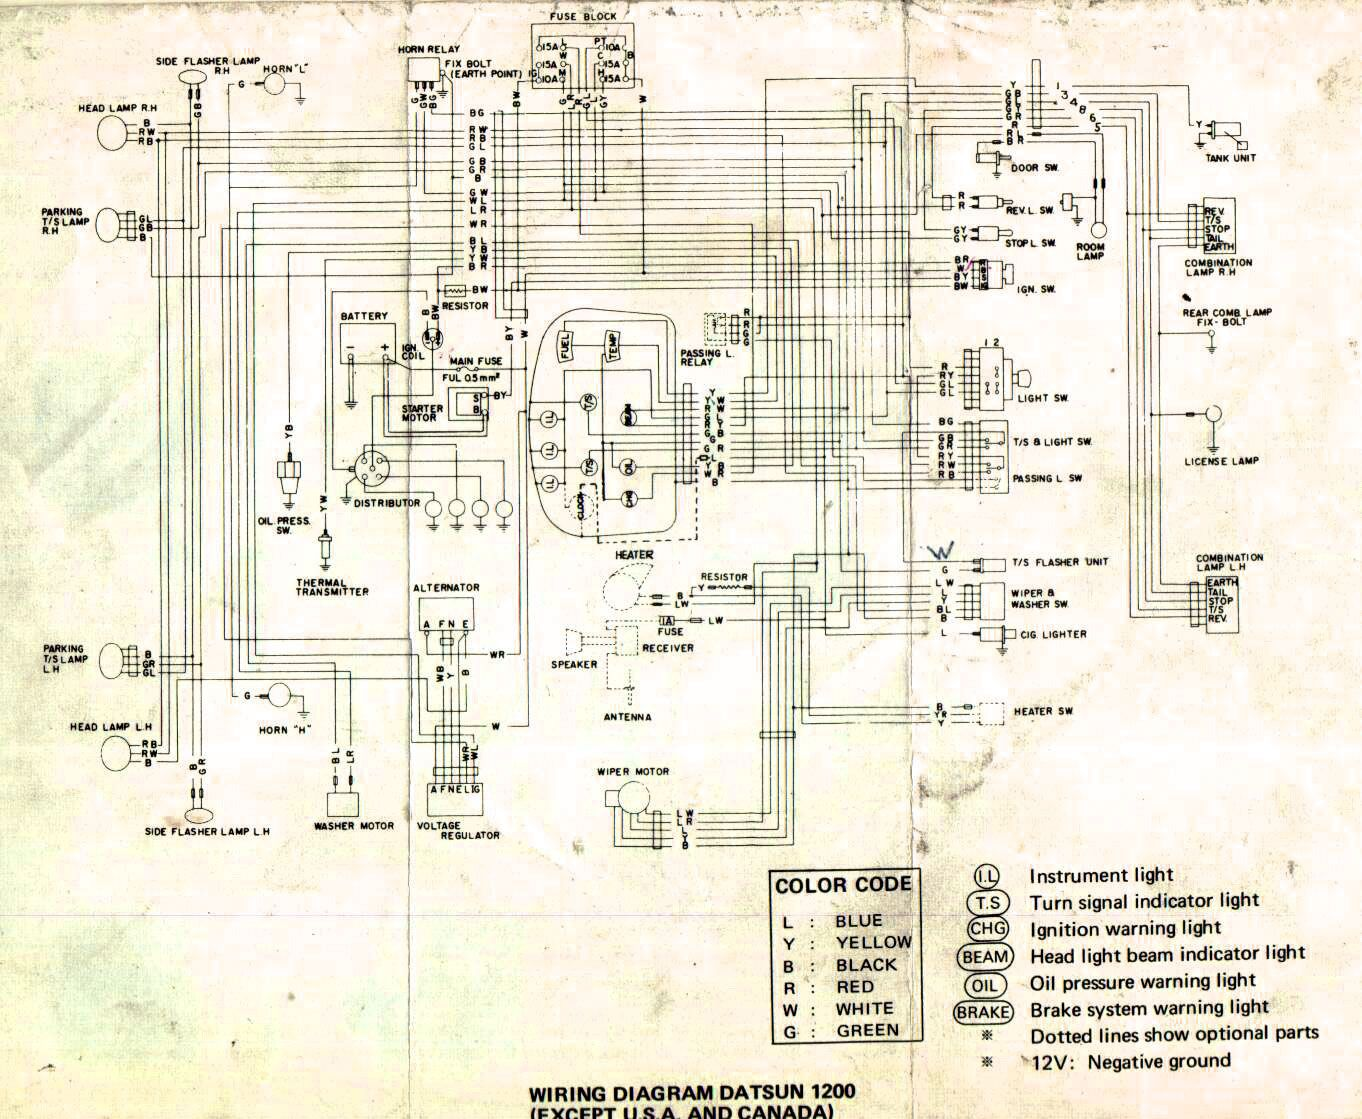 nissan 1400 wiring diagram free download search for wiring diagrams u2022 rh stephenpoon co